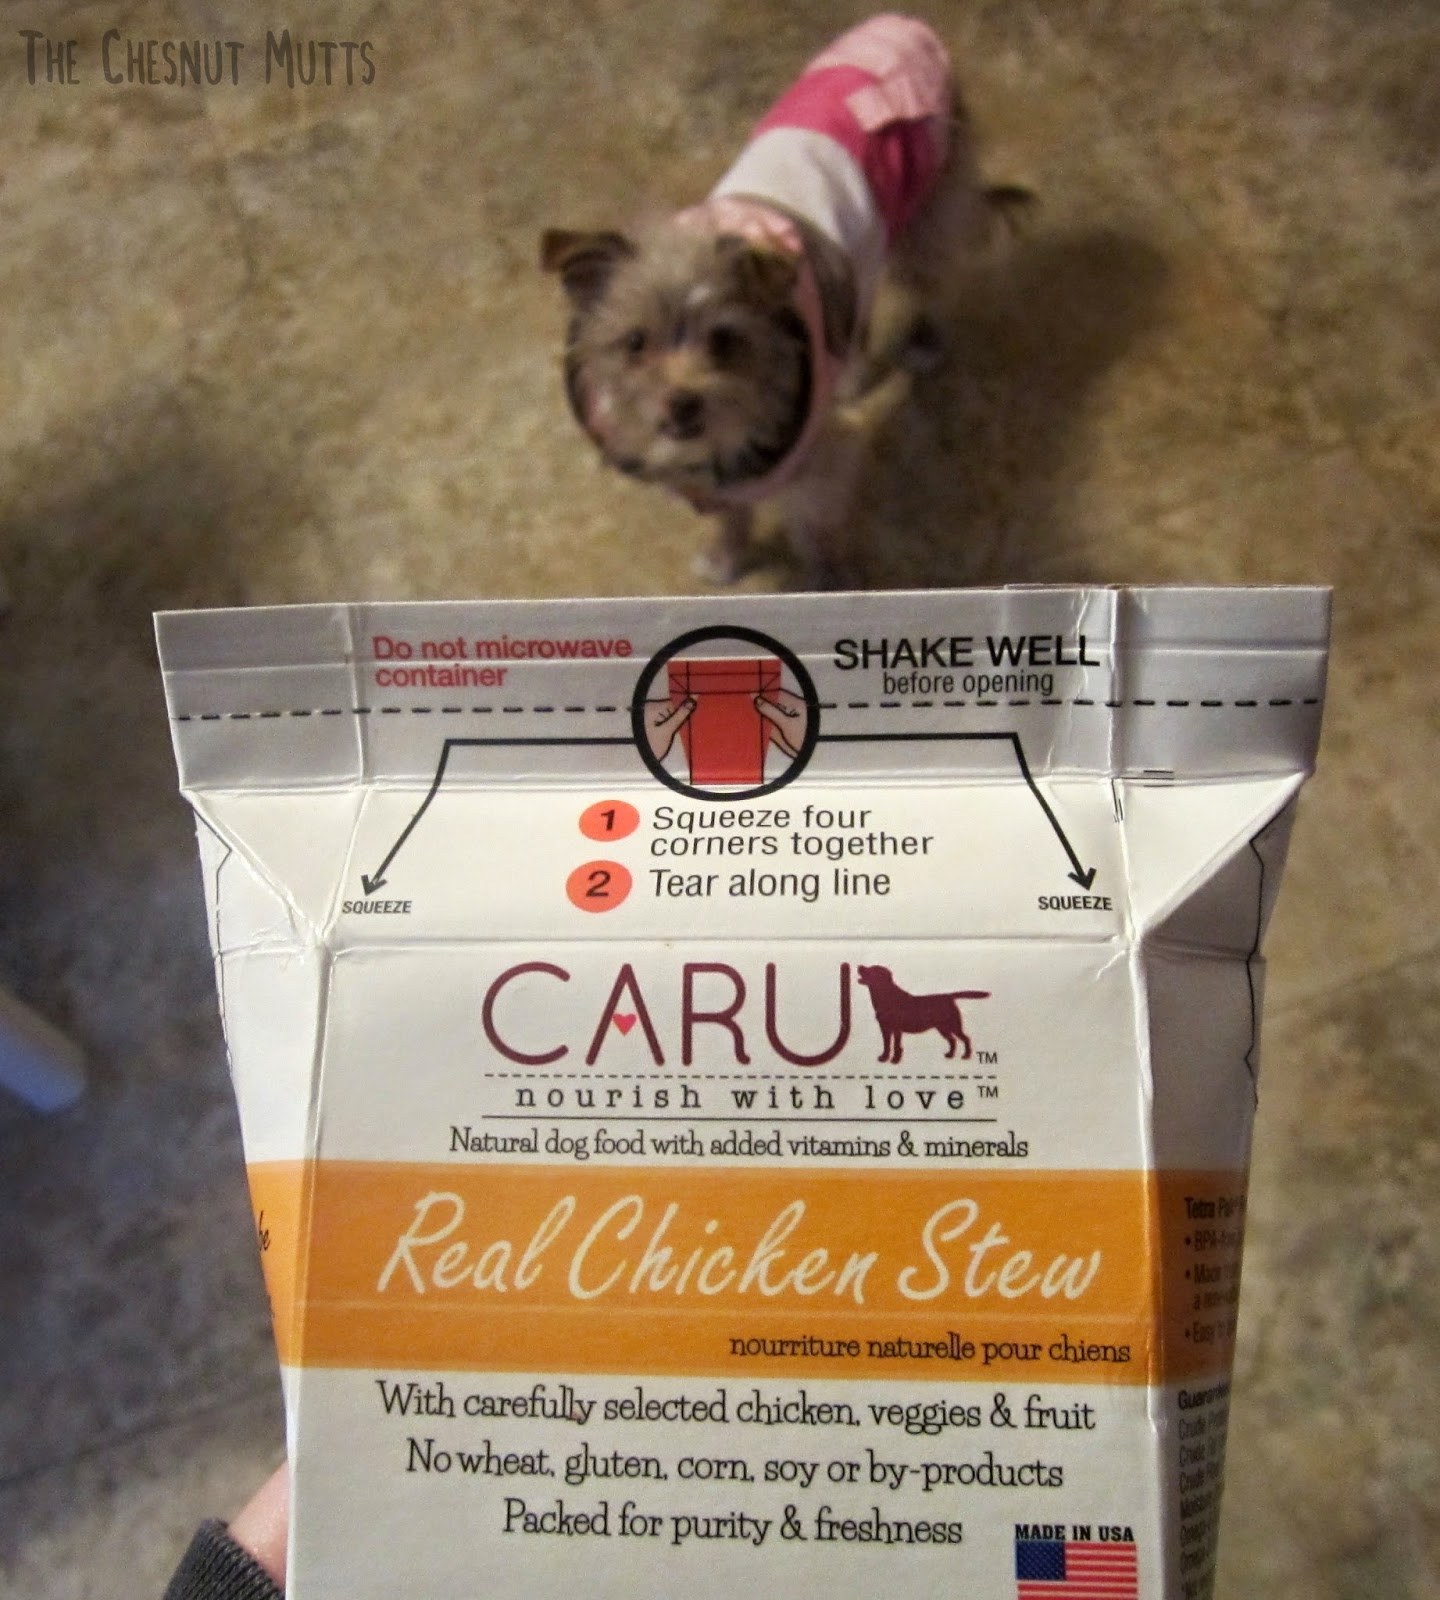 Caru nourish with love. Natural dog food with added vitamins & minerals. Real Chicken Stew. With carefully selected chicken, veggies & fruit. No wheat, gluten, corn, soy or by-products. Packed for purity & freshness. Made in USA